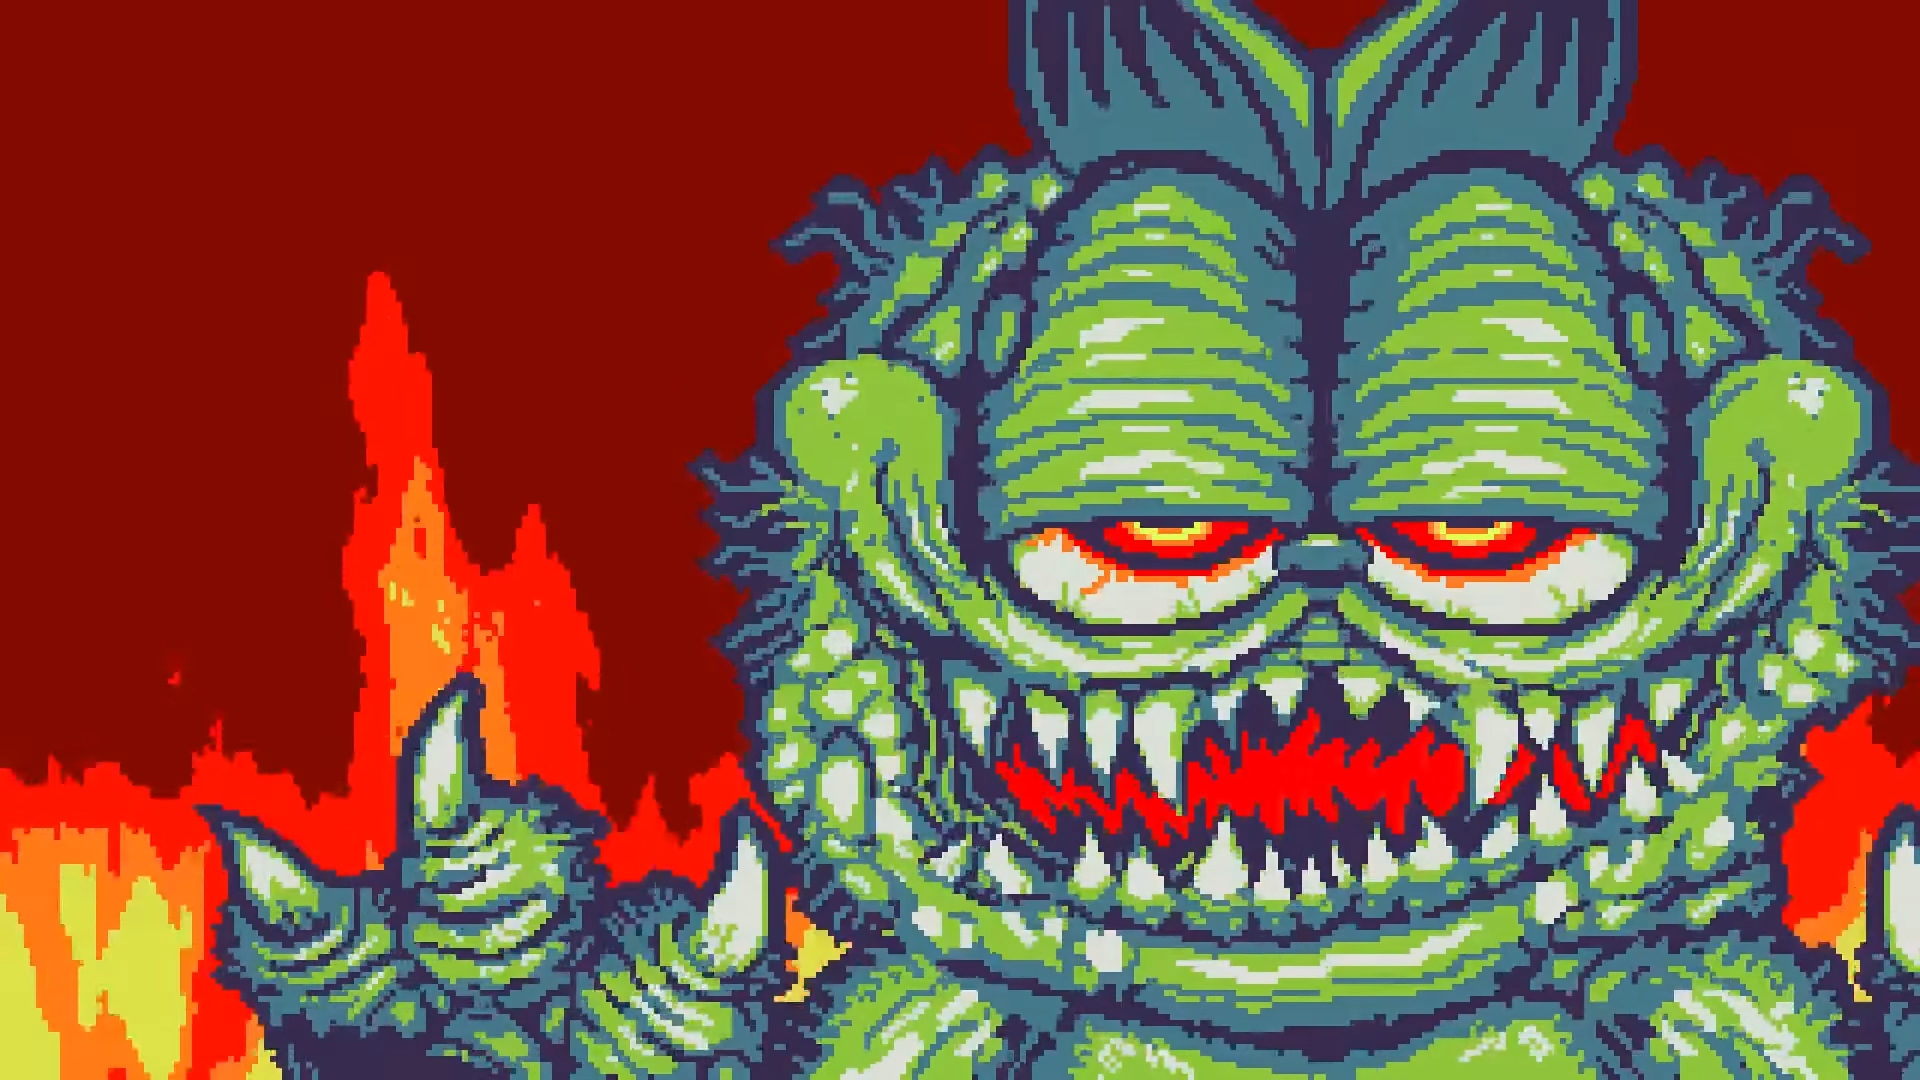 Watch A Hideously Mutated Garfield Hunt Down Jon In This Amazing Game Boy Horror Game Mockup Gamesradar